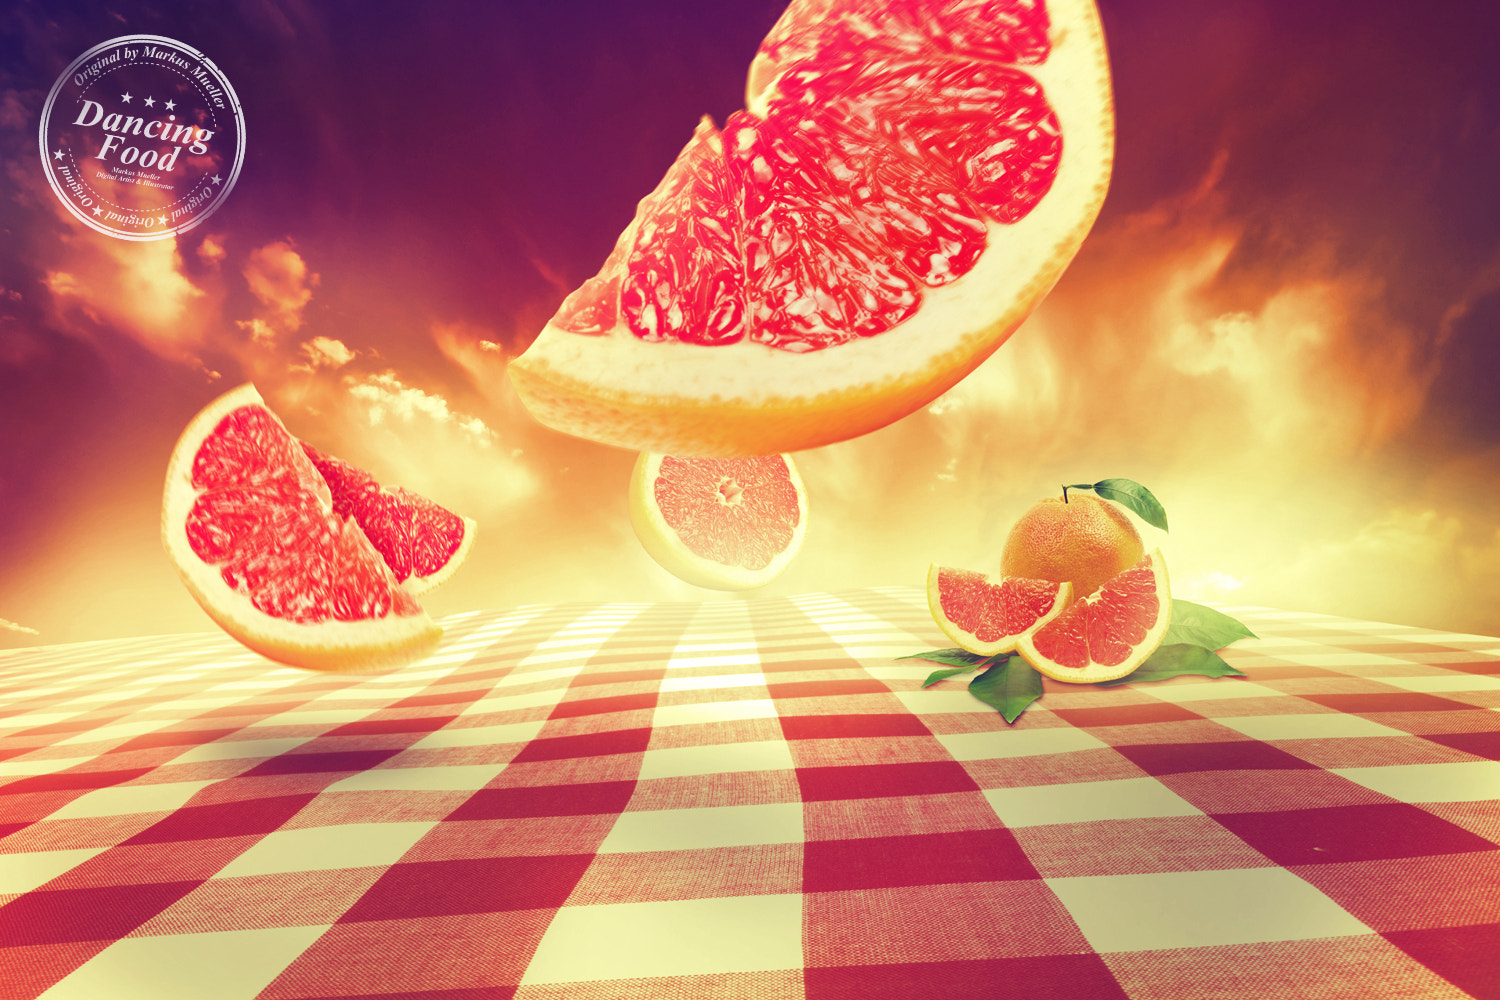 Photograph Dancing Food - Grapefruit by Markus Müller on 500px